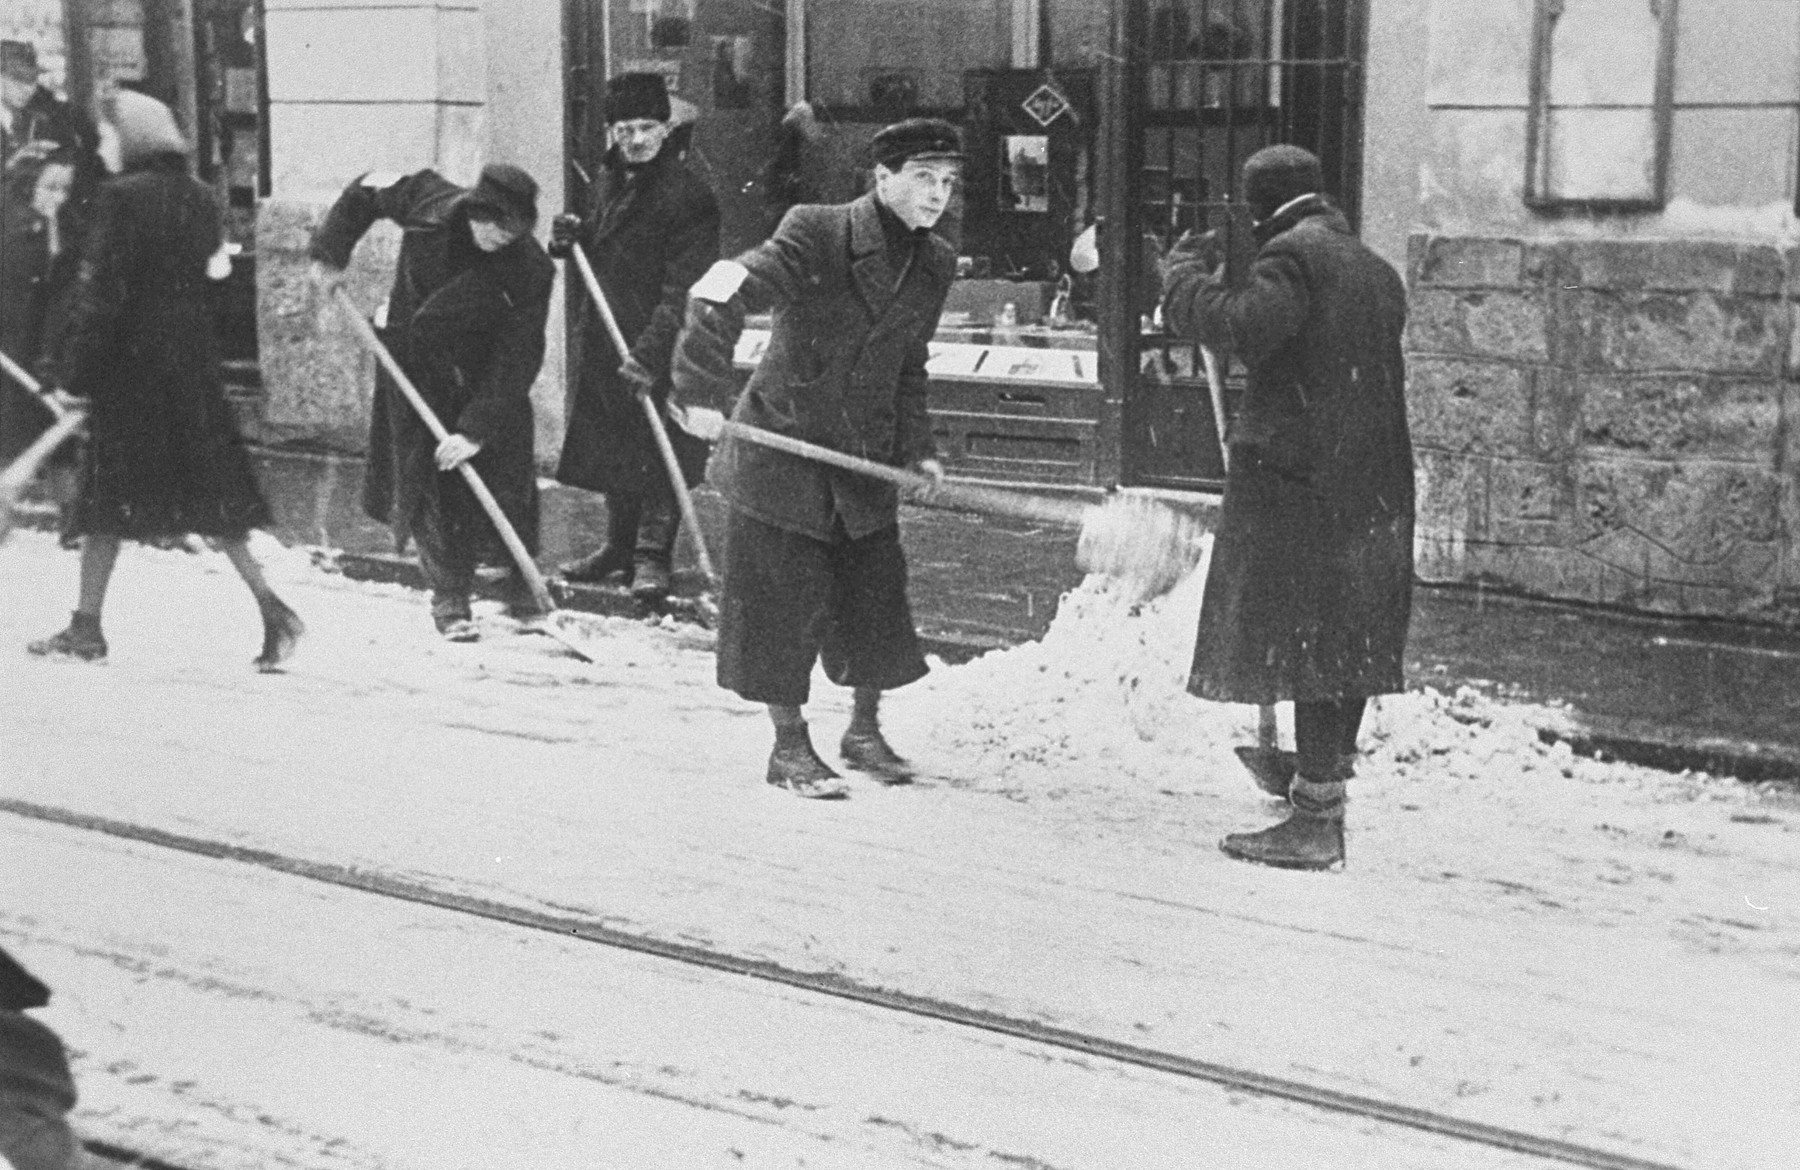 Jews wearing armbands are forced to shovel snow from the pavement in Krakow.